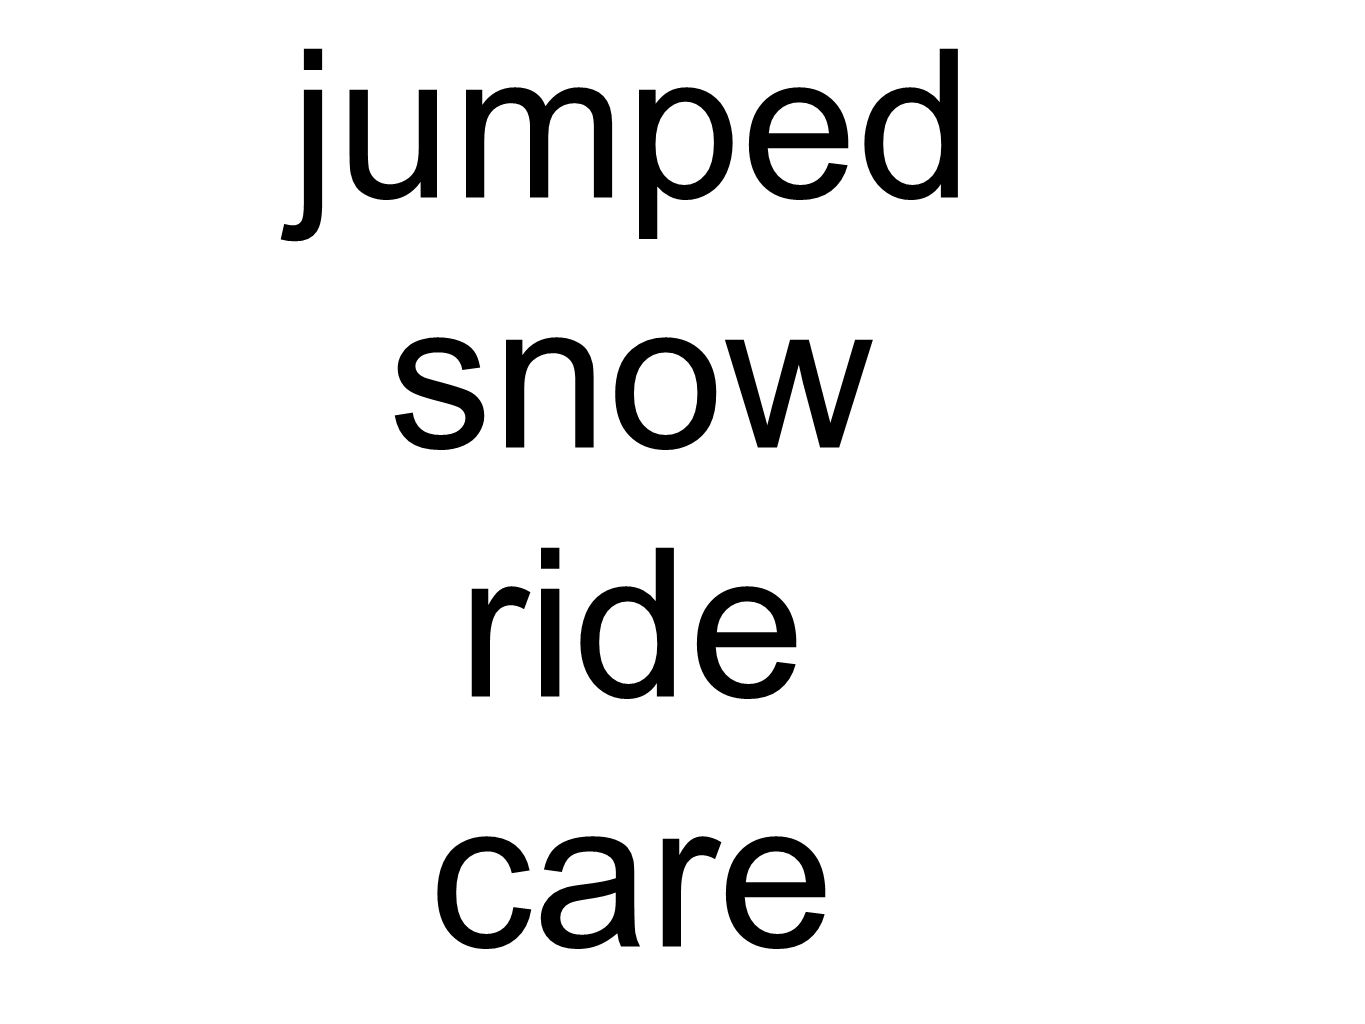 jumped snow ride care